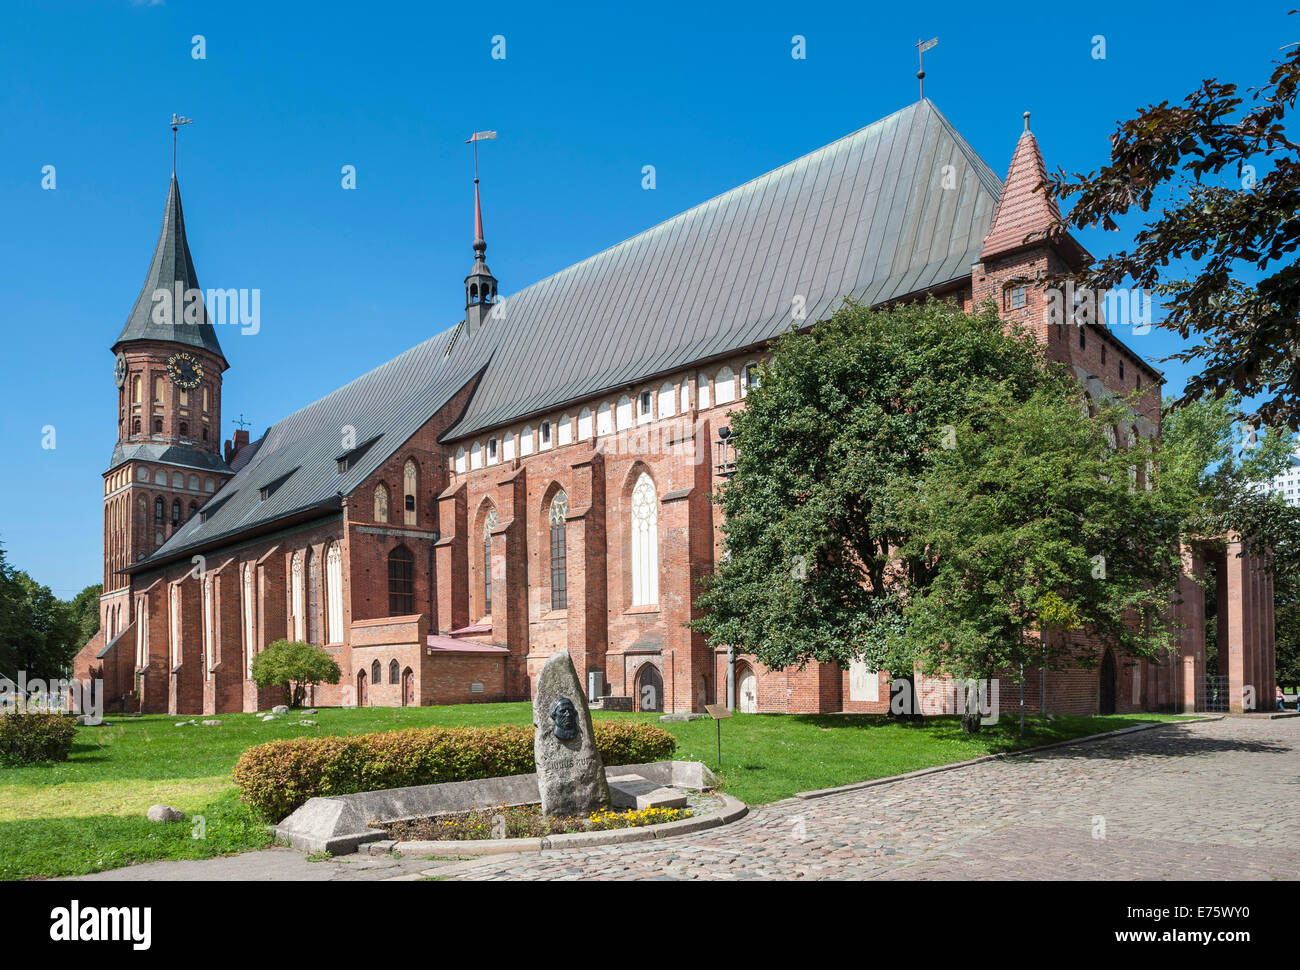 Königsberg Cathedral, Brick Gothic-style, 14th century, destroyed during World War II, reconstruction since - Stock Image